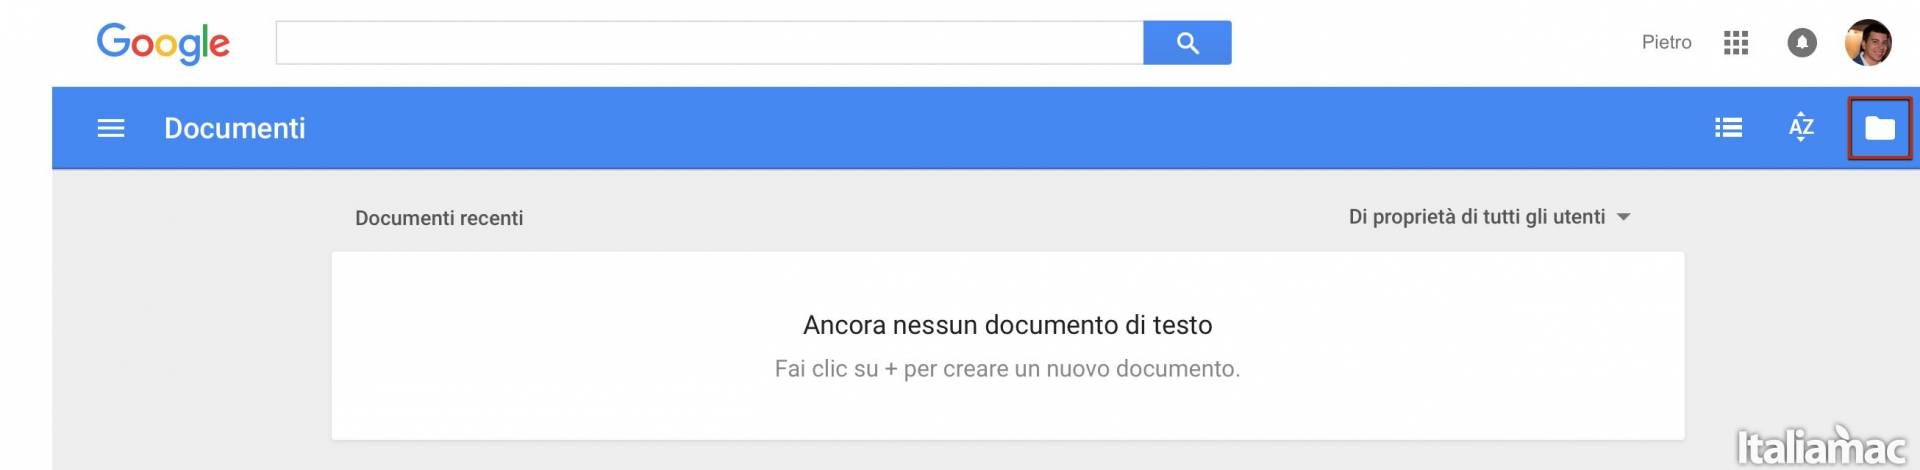 google doc Come aprire file XPS su Mac